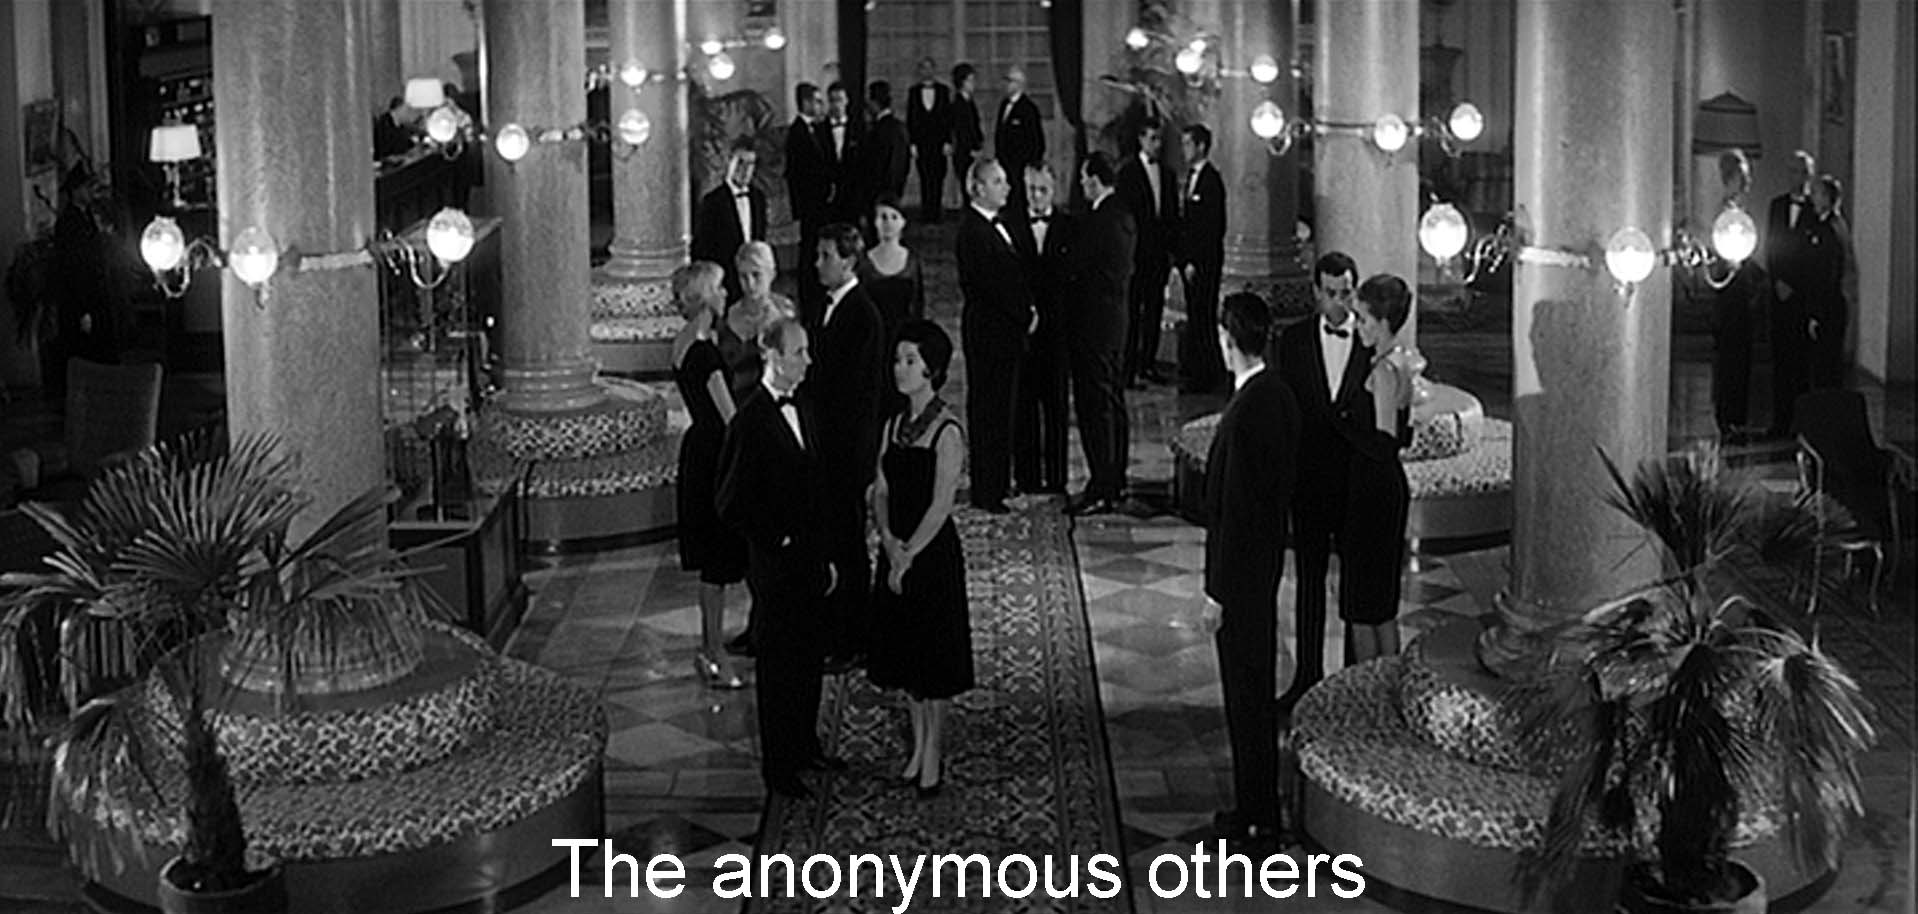 The anonymous others